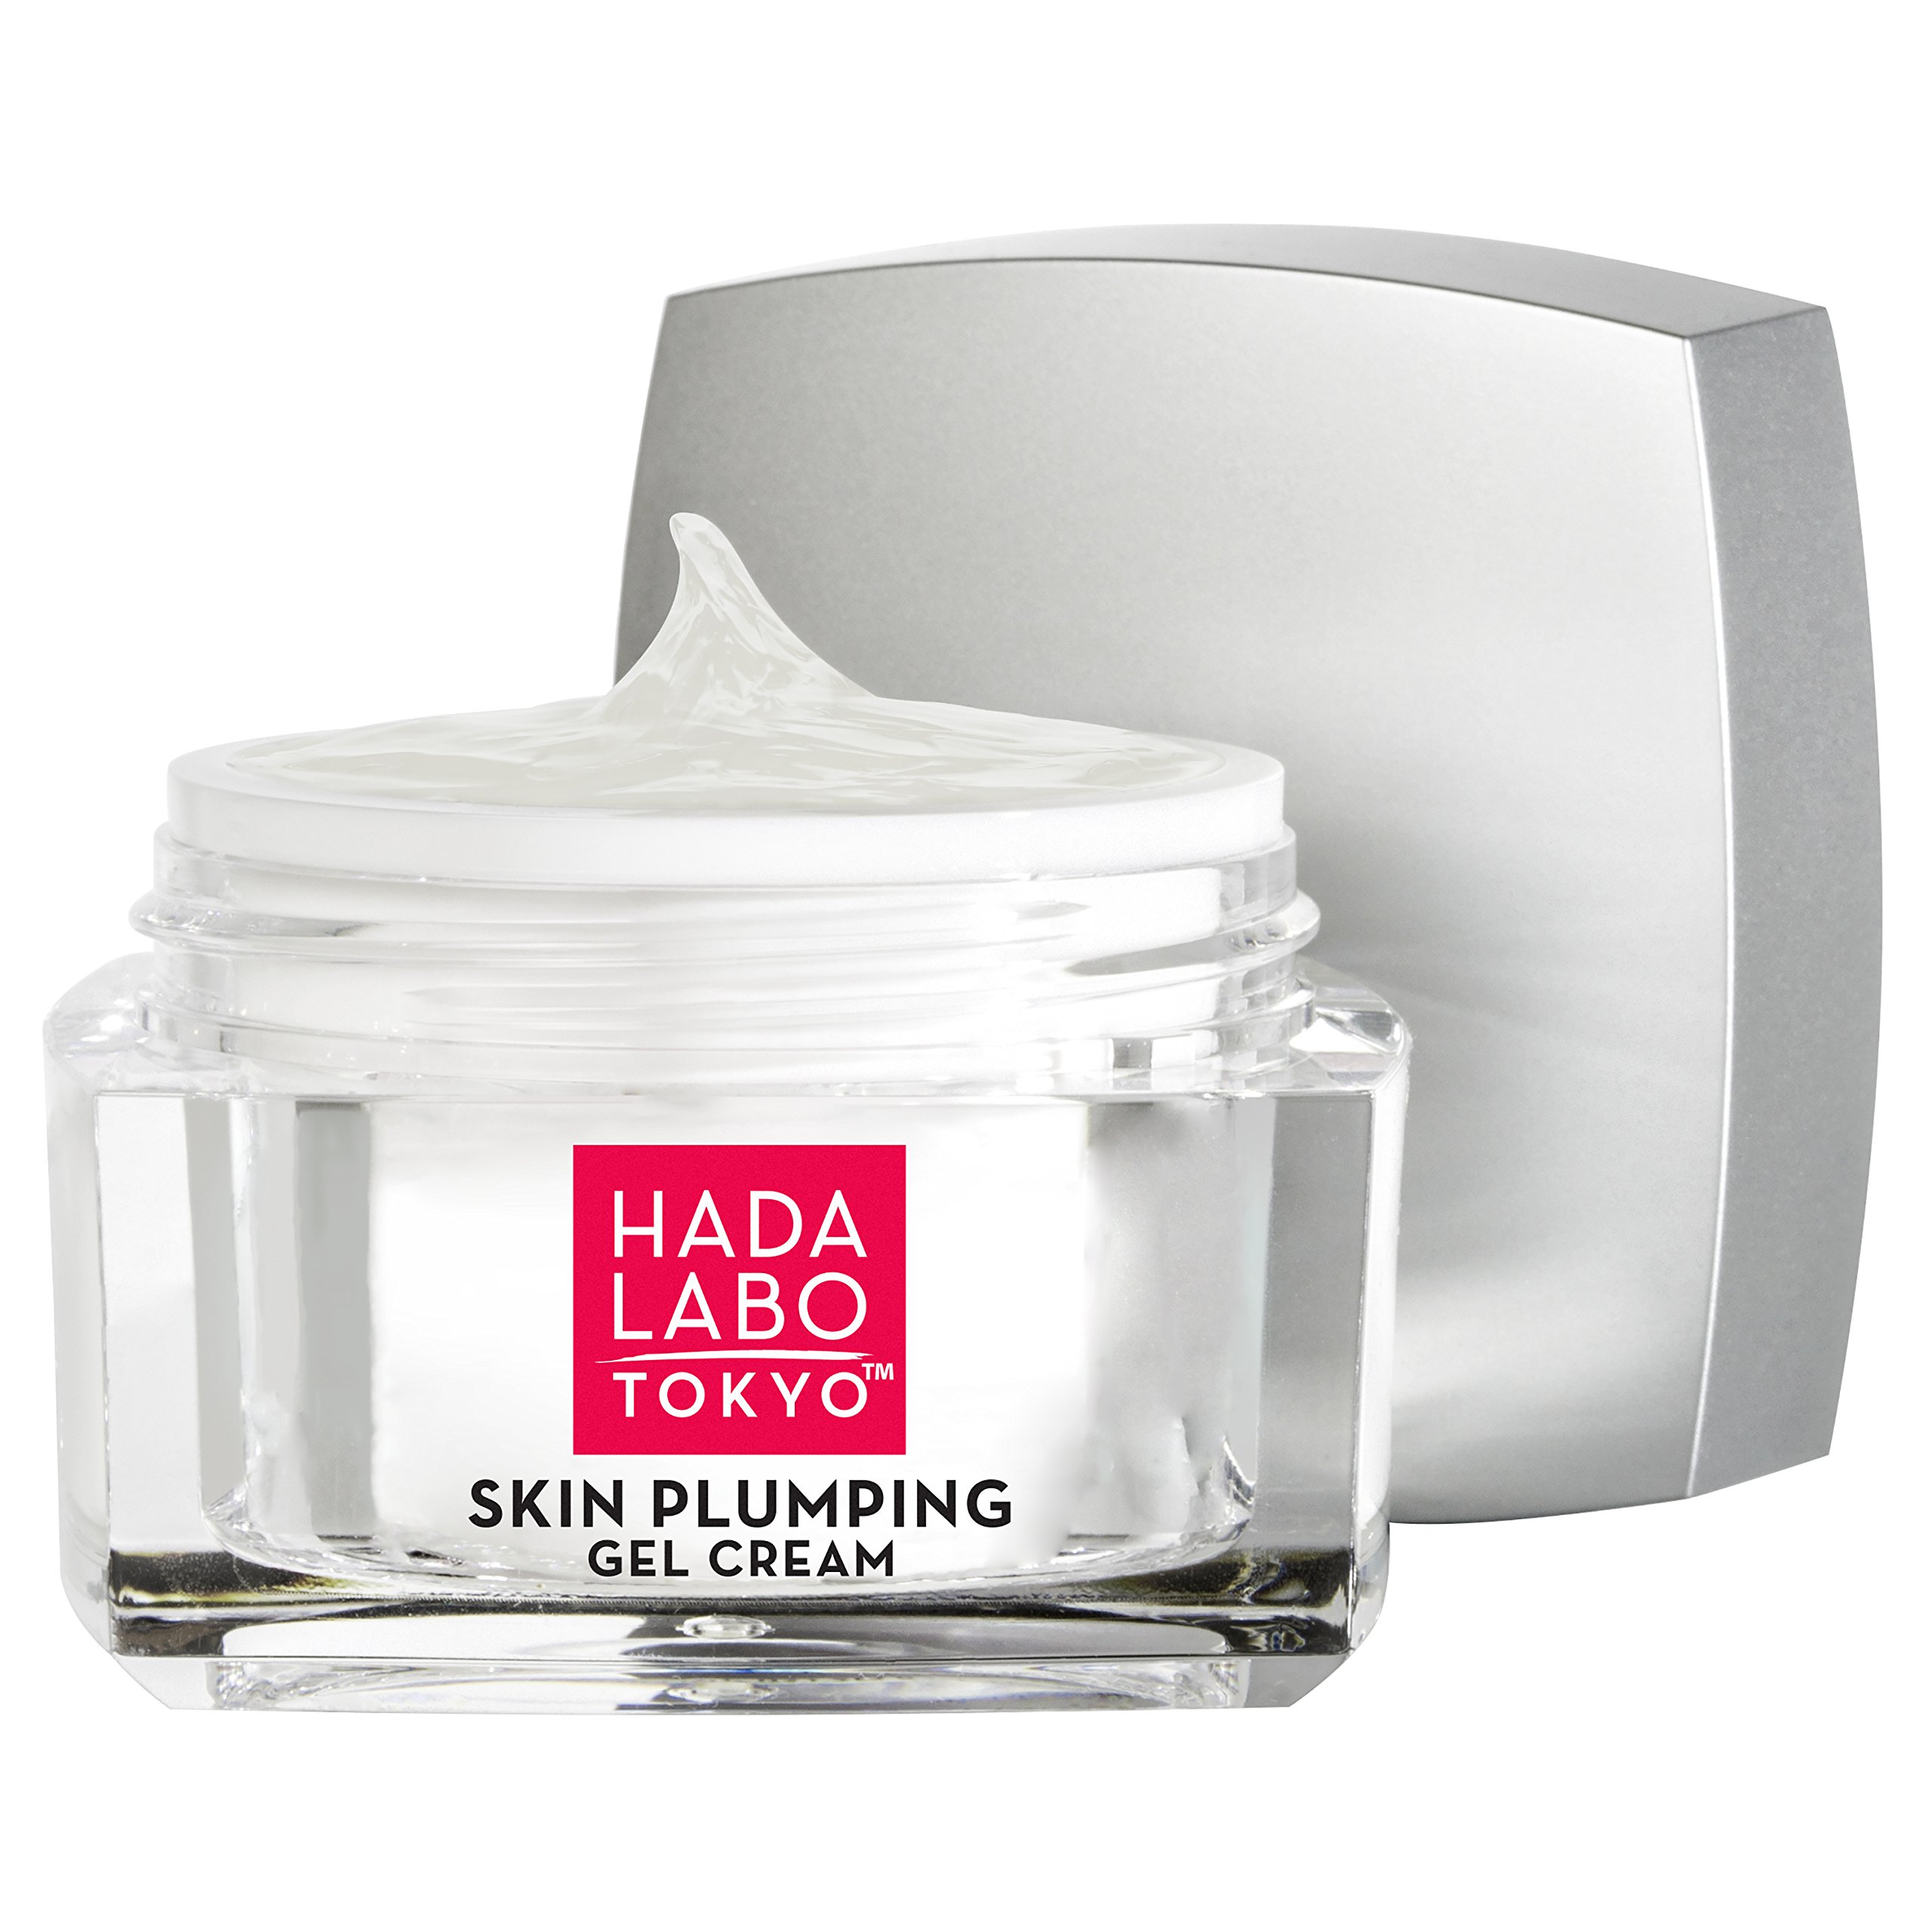 Hada Labo Tokyo Skin Plumping Gel Cream, 1.76 FL OZ - with Super Hyaluronic Acid and Collagen - 24-Hour Moisture and Visible Line Plumping, fragrance free, paraben free, non-comedogenic by Hada Labo Tokyo (Image #3)